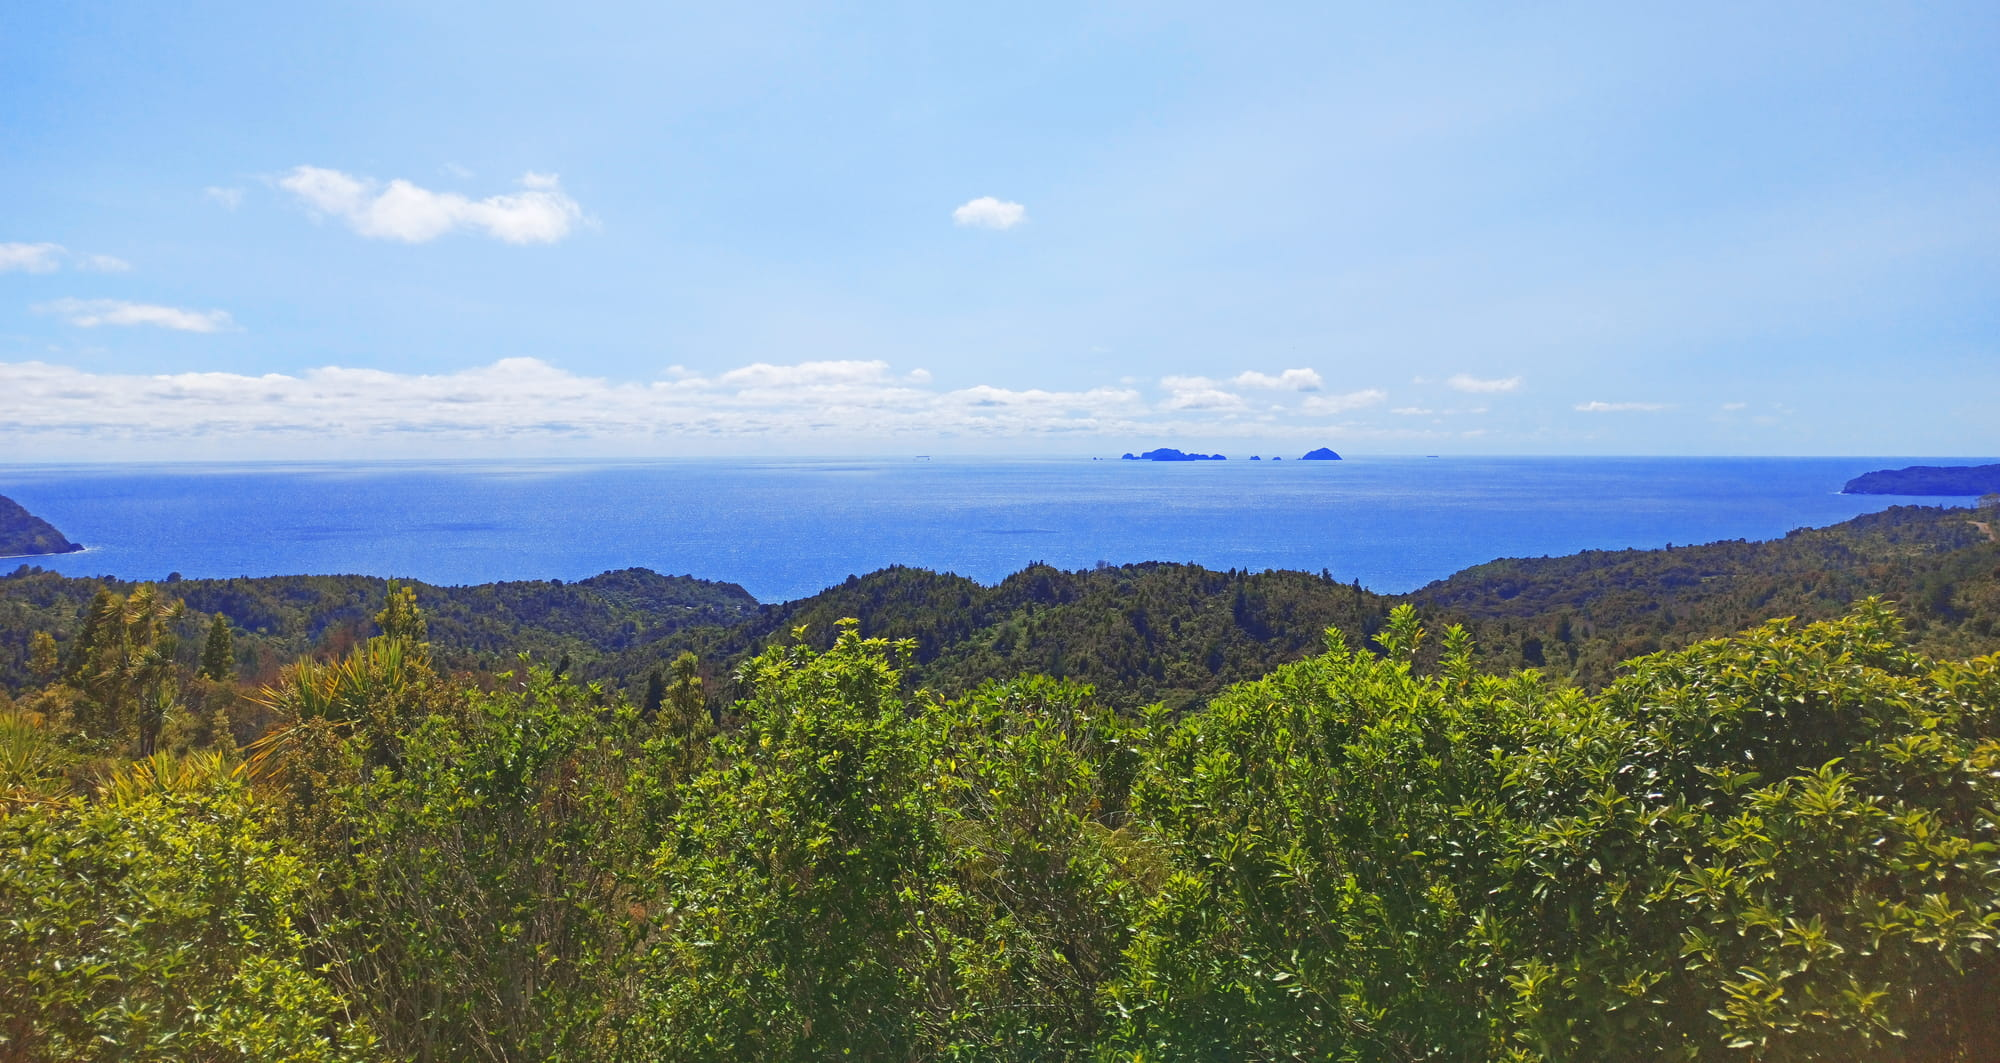 Shot of Coromandel from the forest out to the ocean